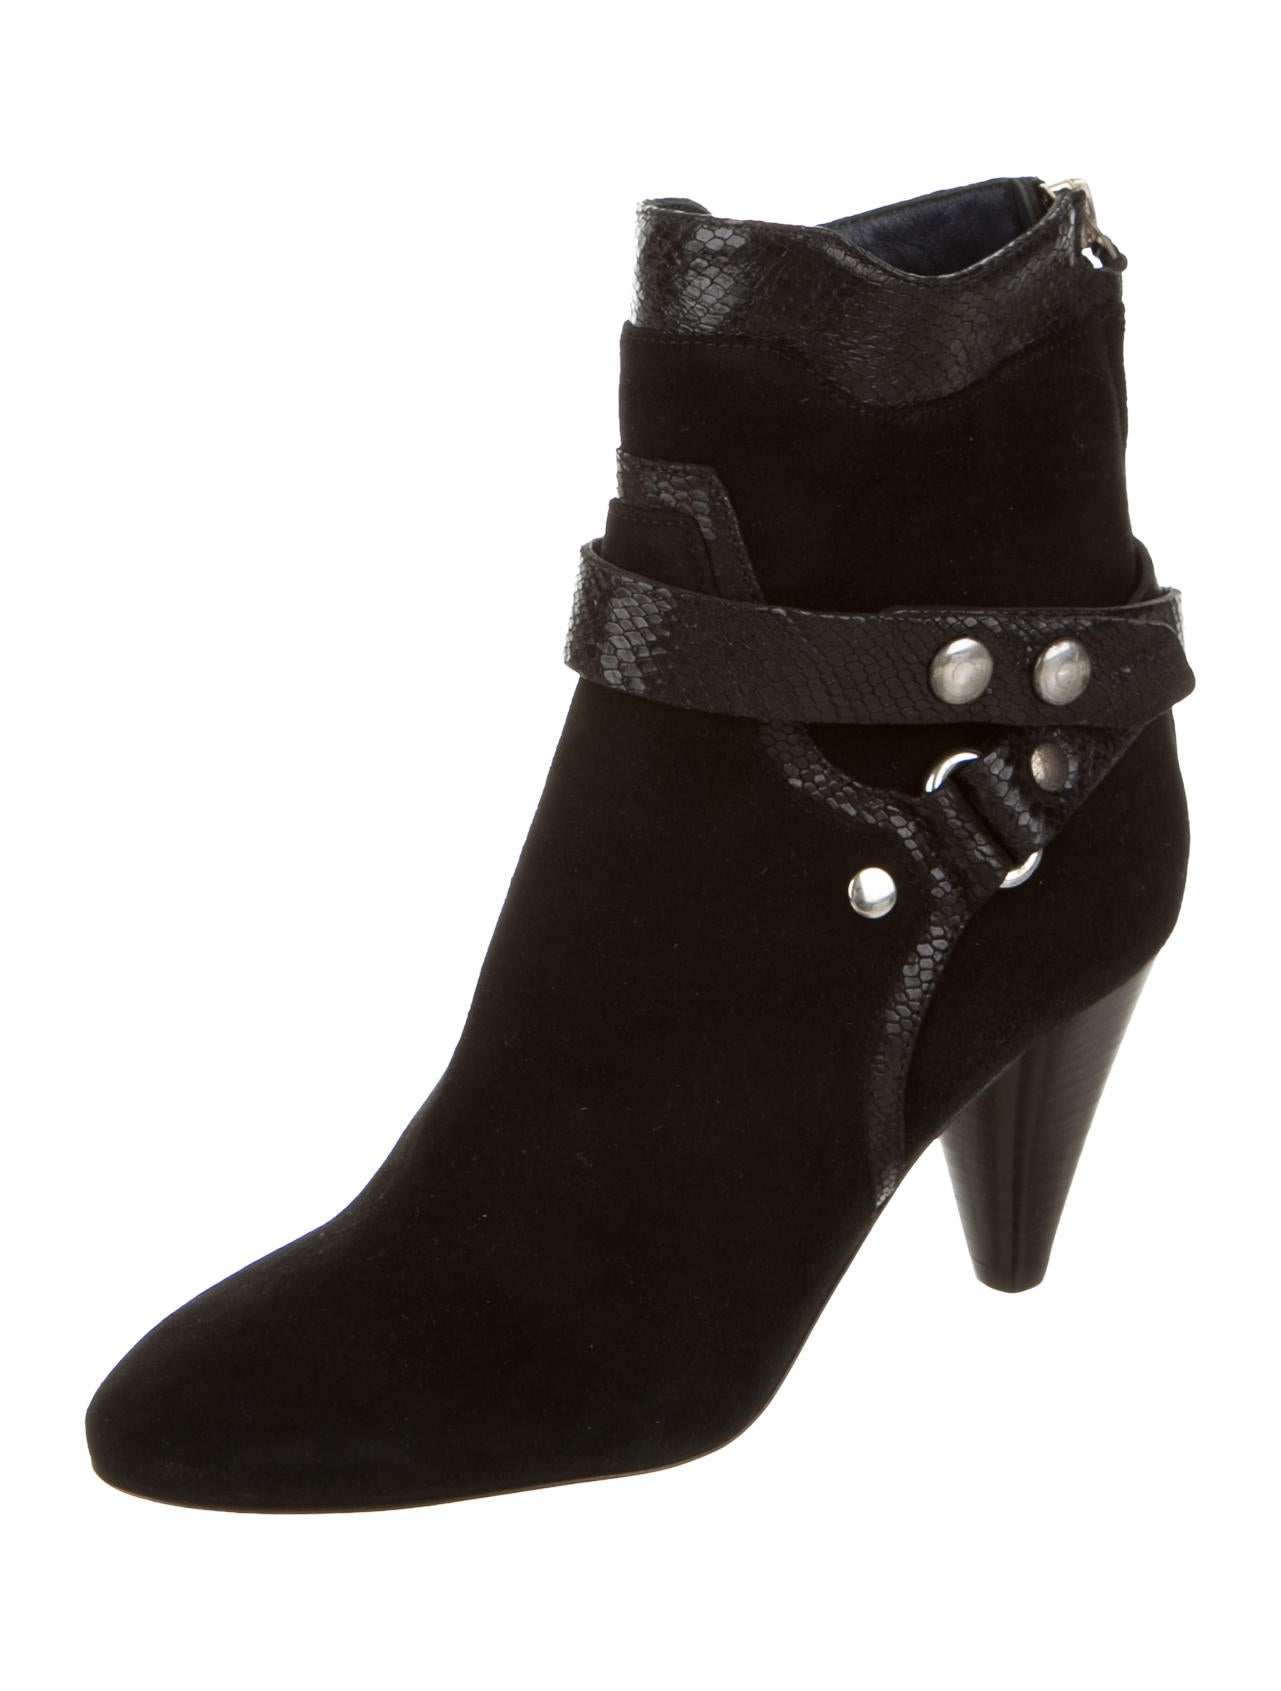 visit for sale supply online Isabel Marant Raya Pointed-Toe Booties n1j5rxpC